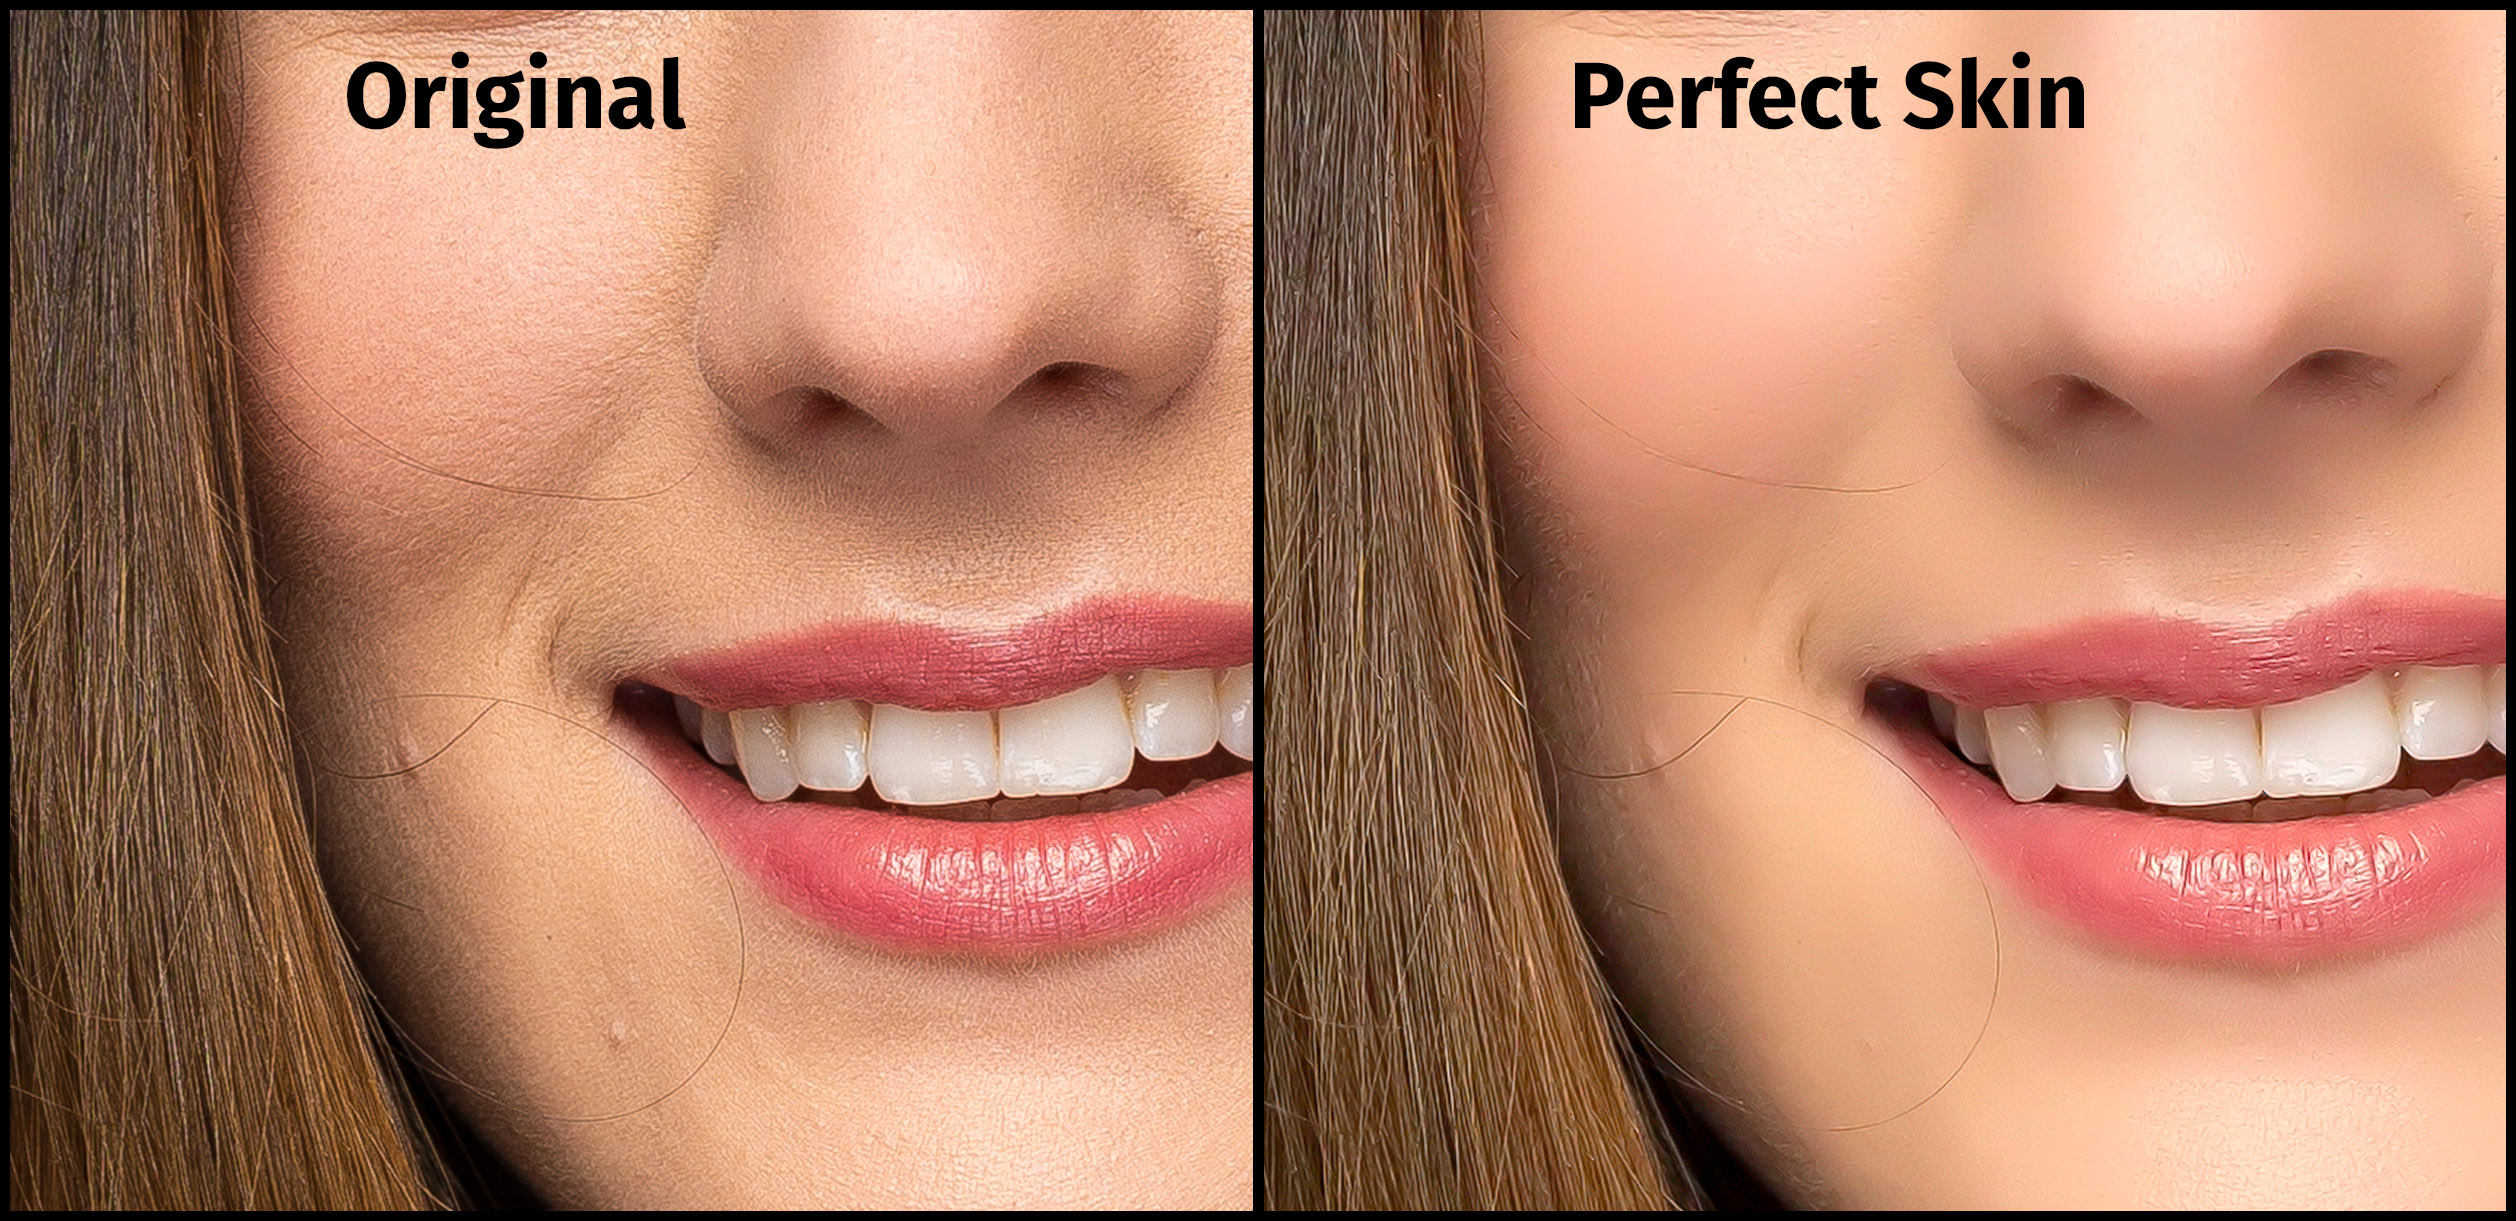 skin perfect kevin ames uses photographer professional clear finishing retouch